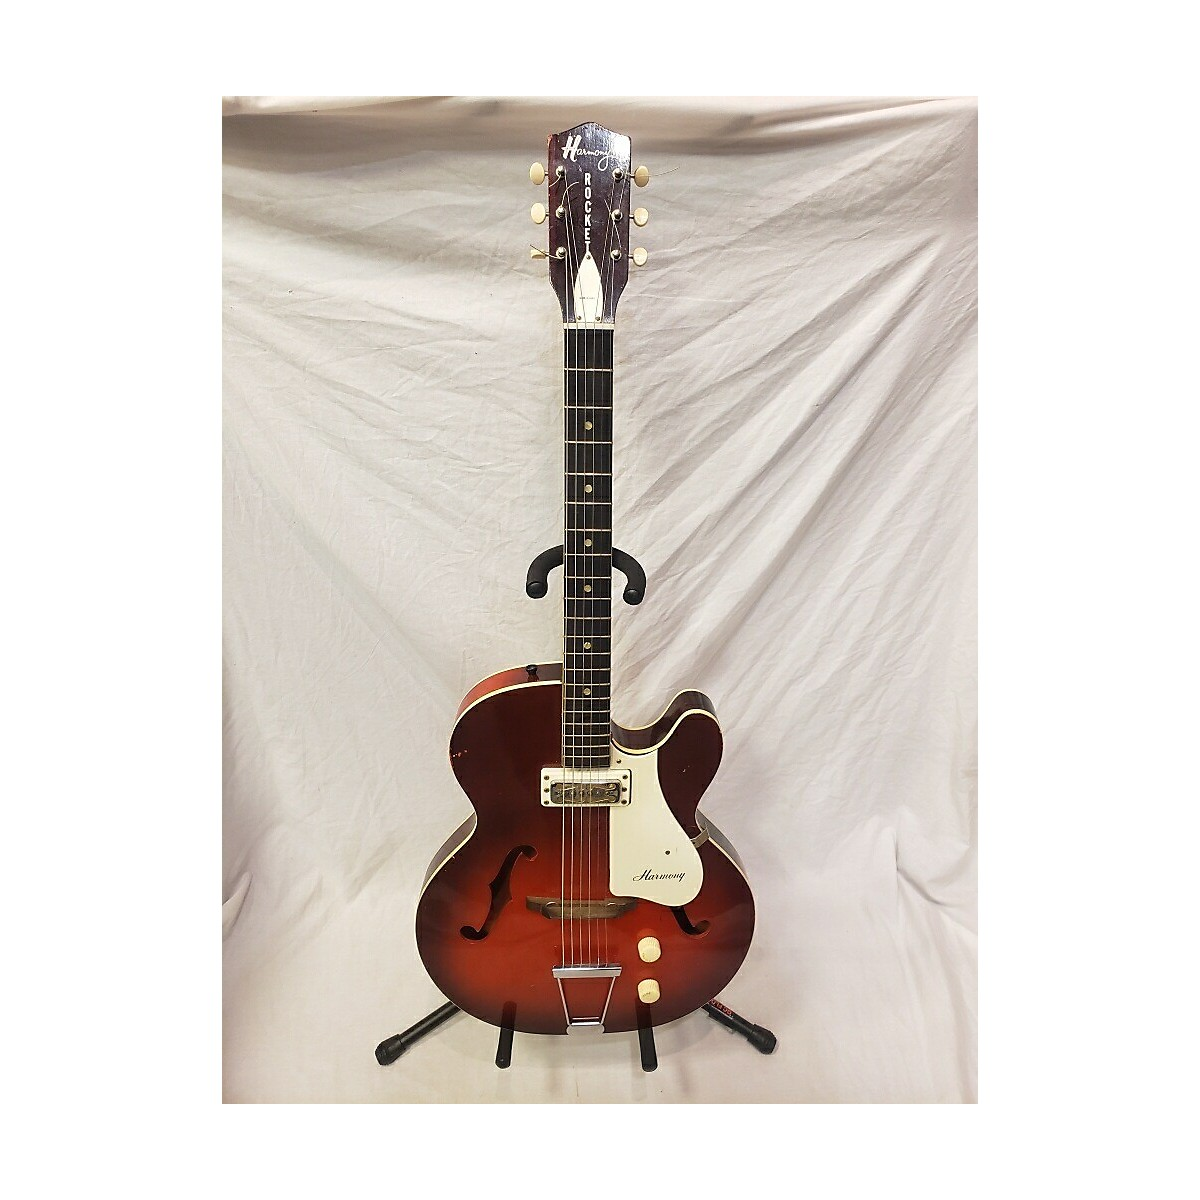 Harmony 1960s Rocket 1 Hollow Body Electric Guitar